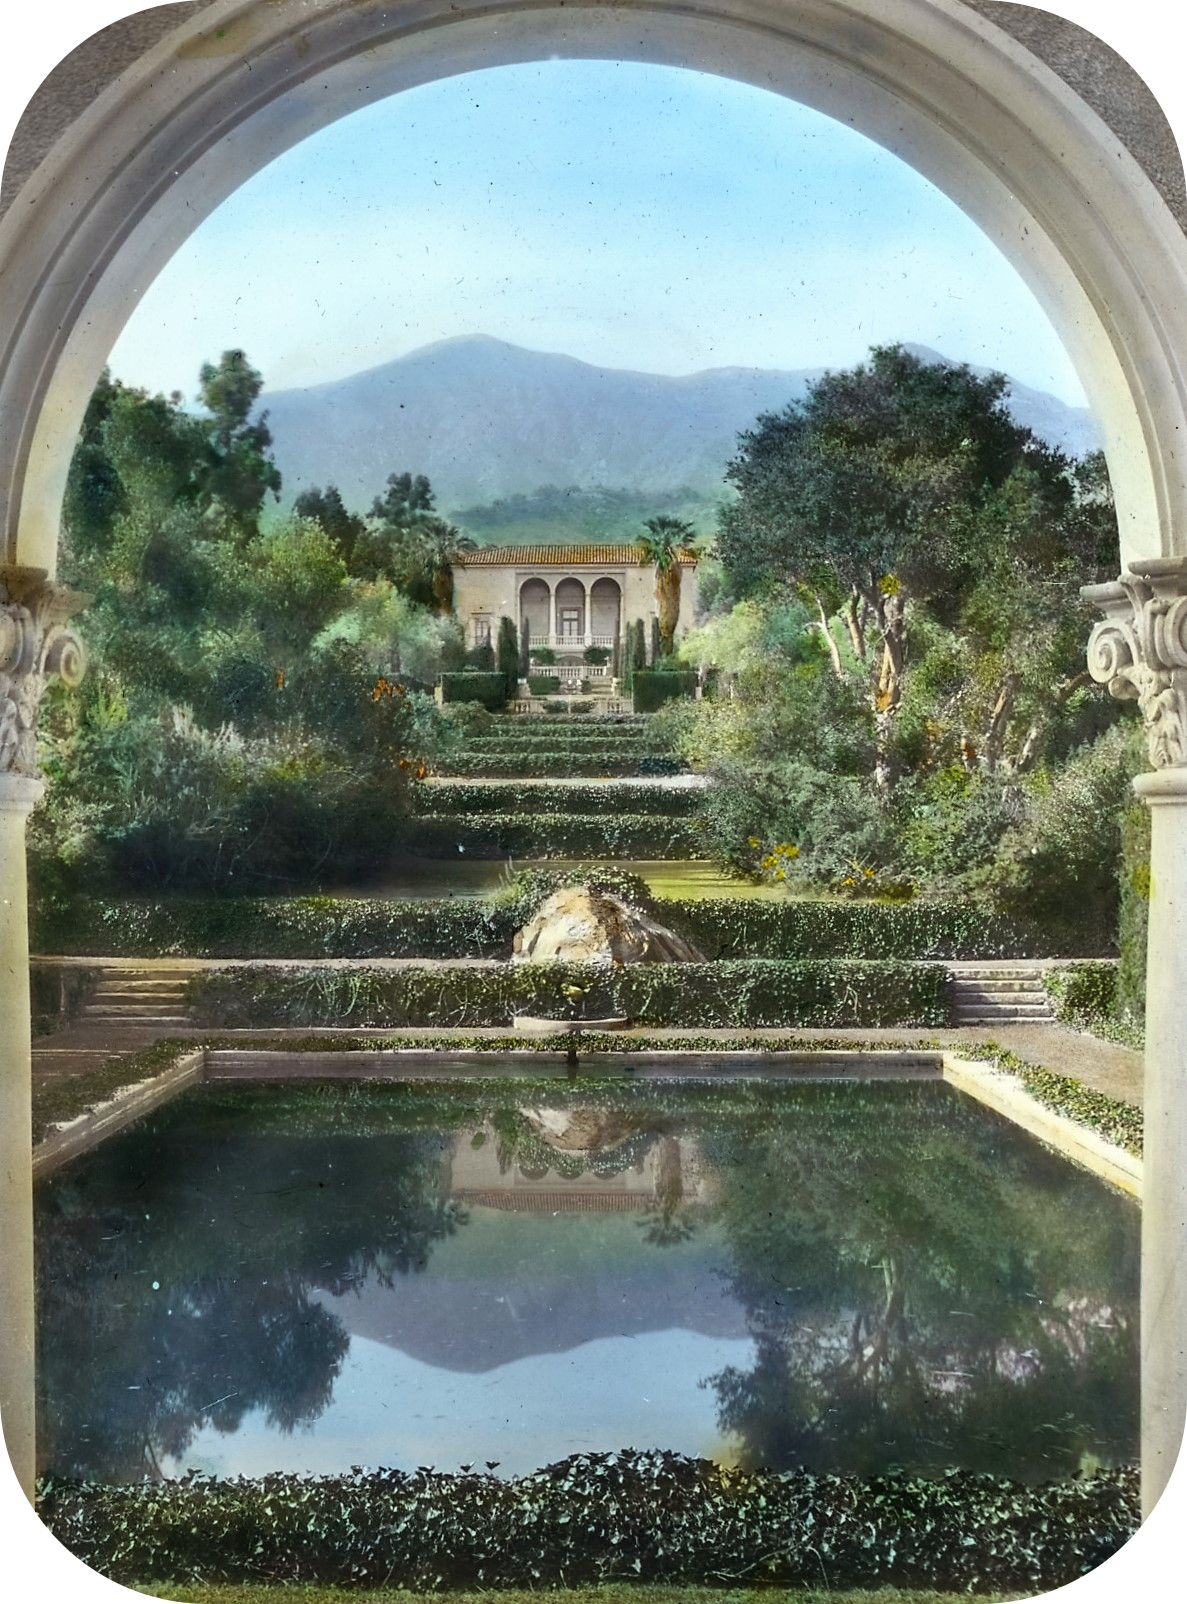 'Las Tejas,' Oakleigh Thorne house, 170 Picacho Road, Montecito, California. View from swimming pool pavilion to house